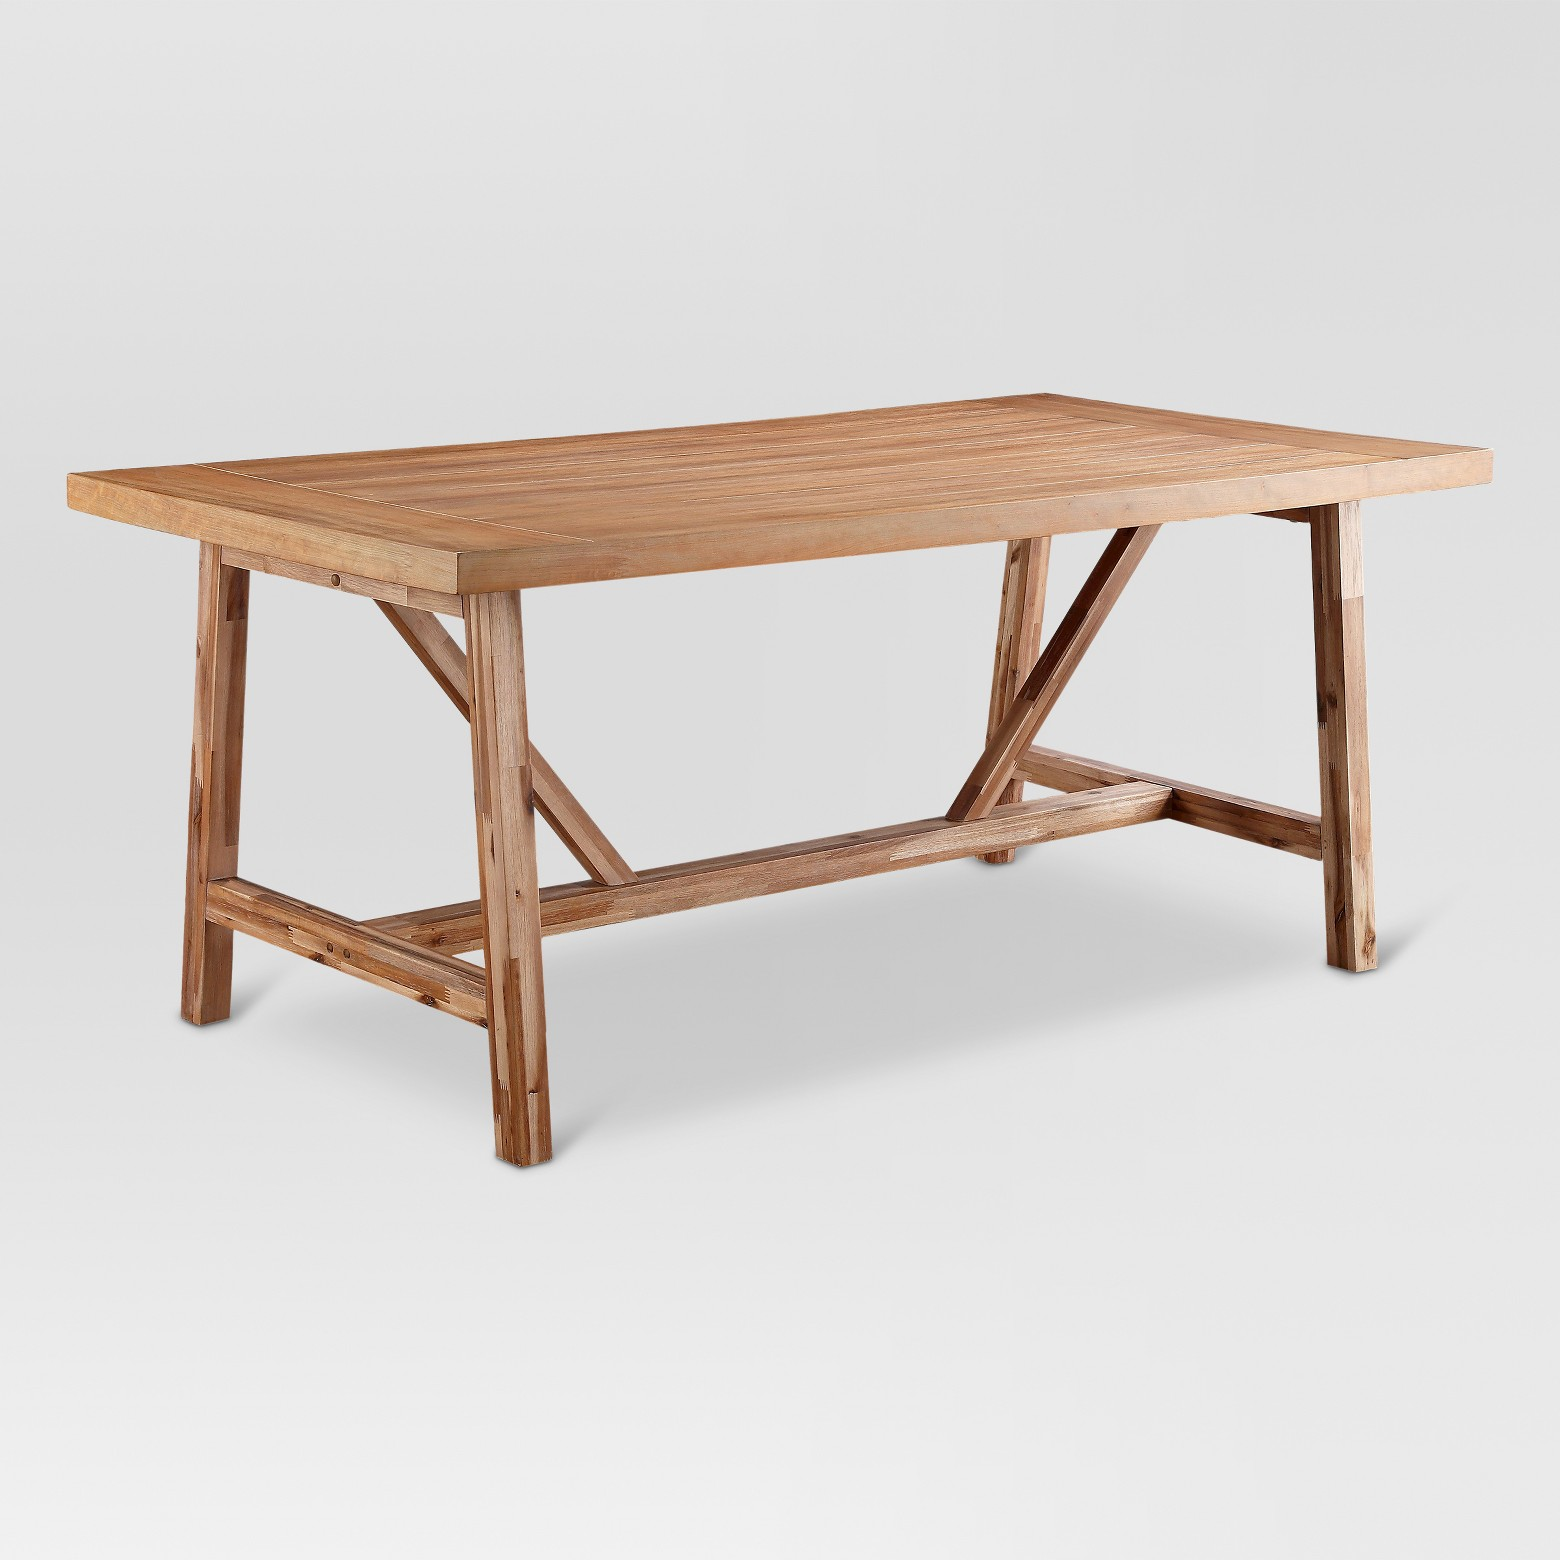 Target Wheaton Farmhouse Table $399